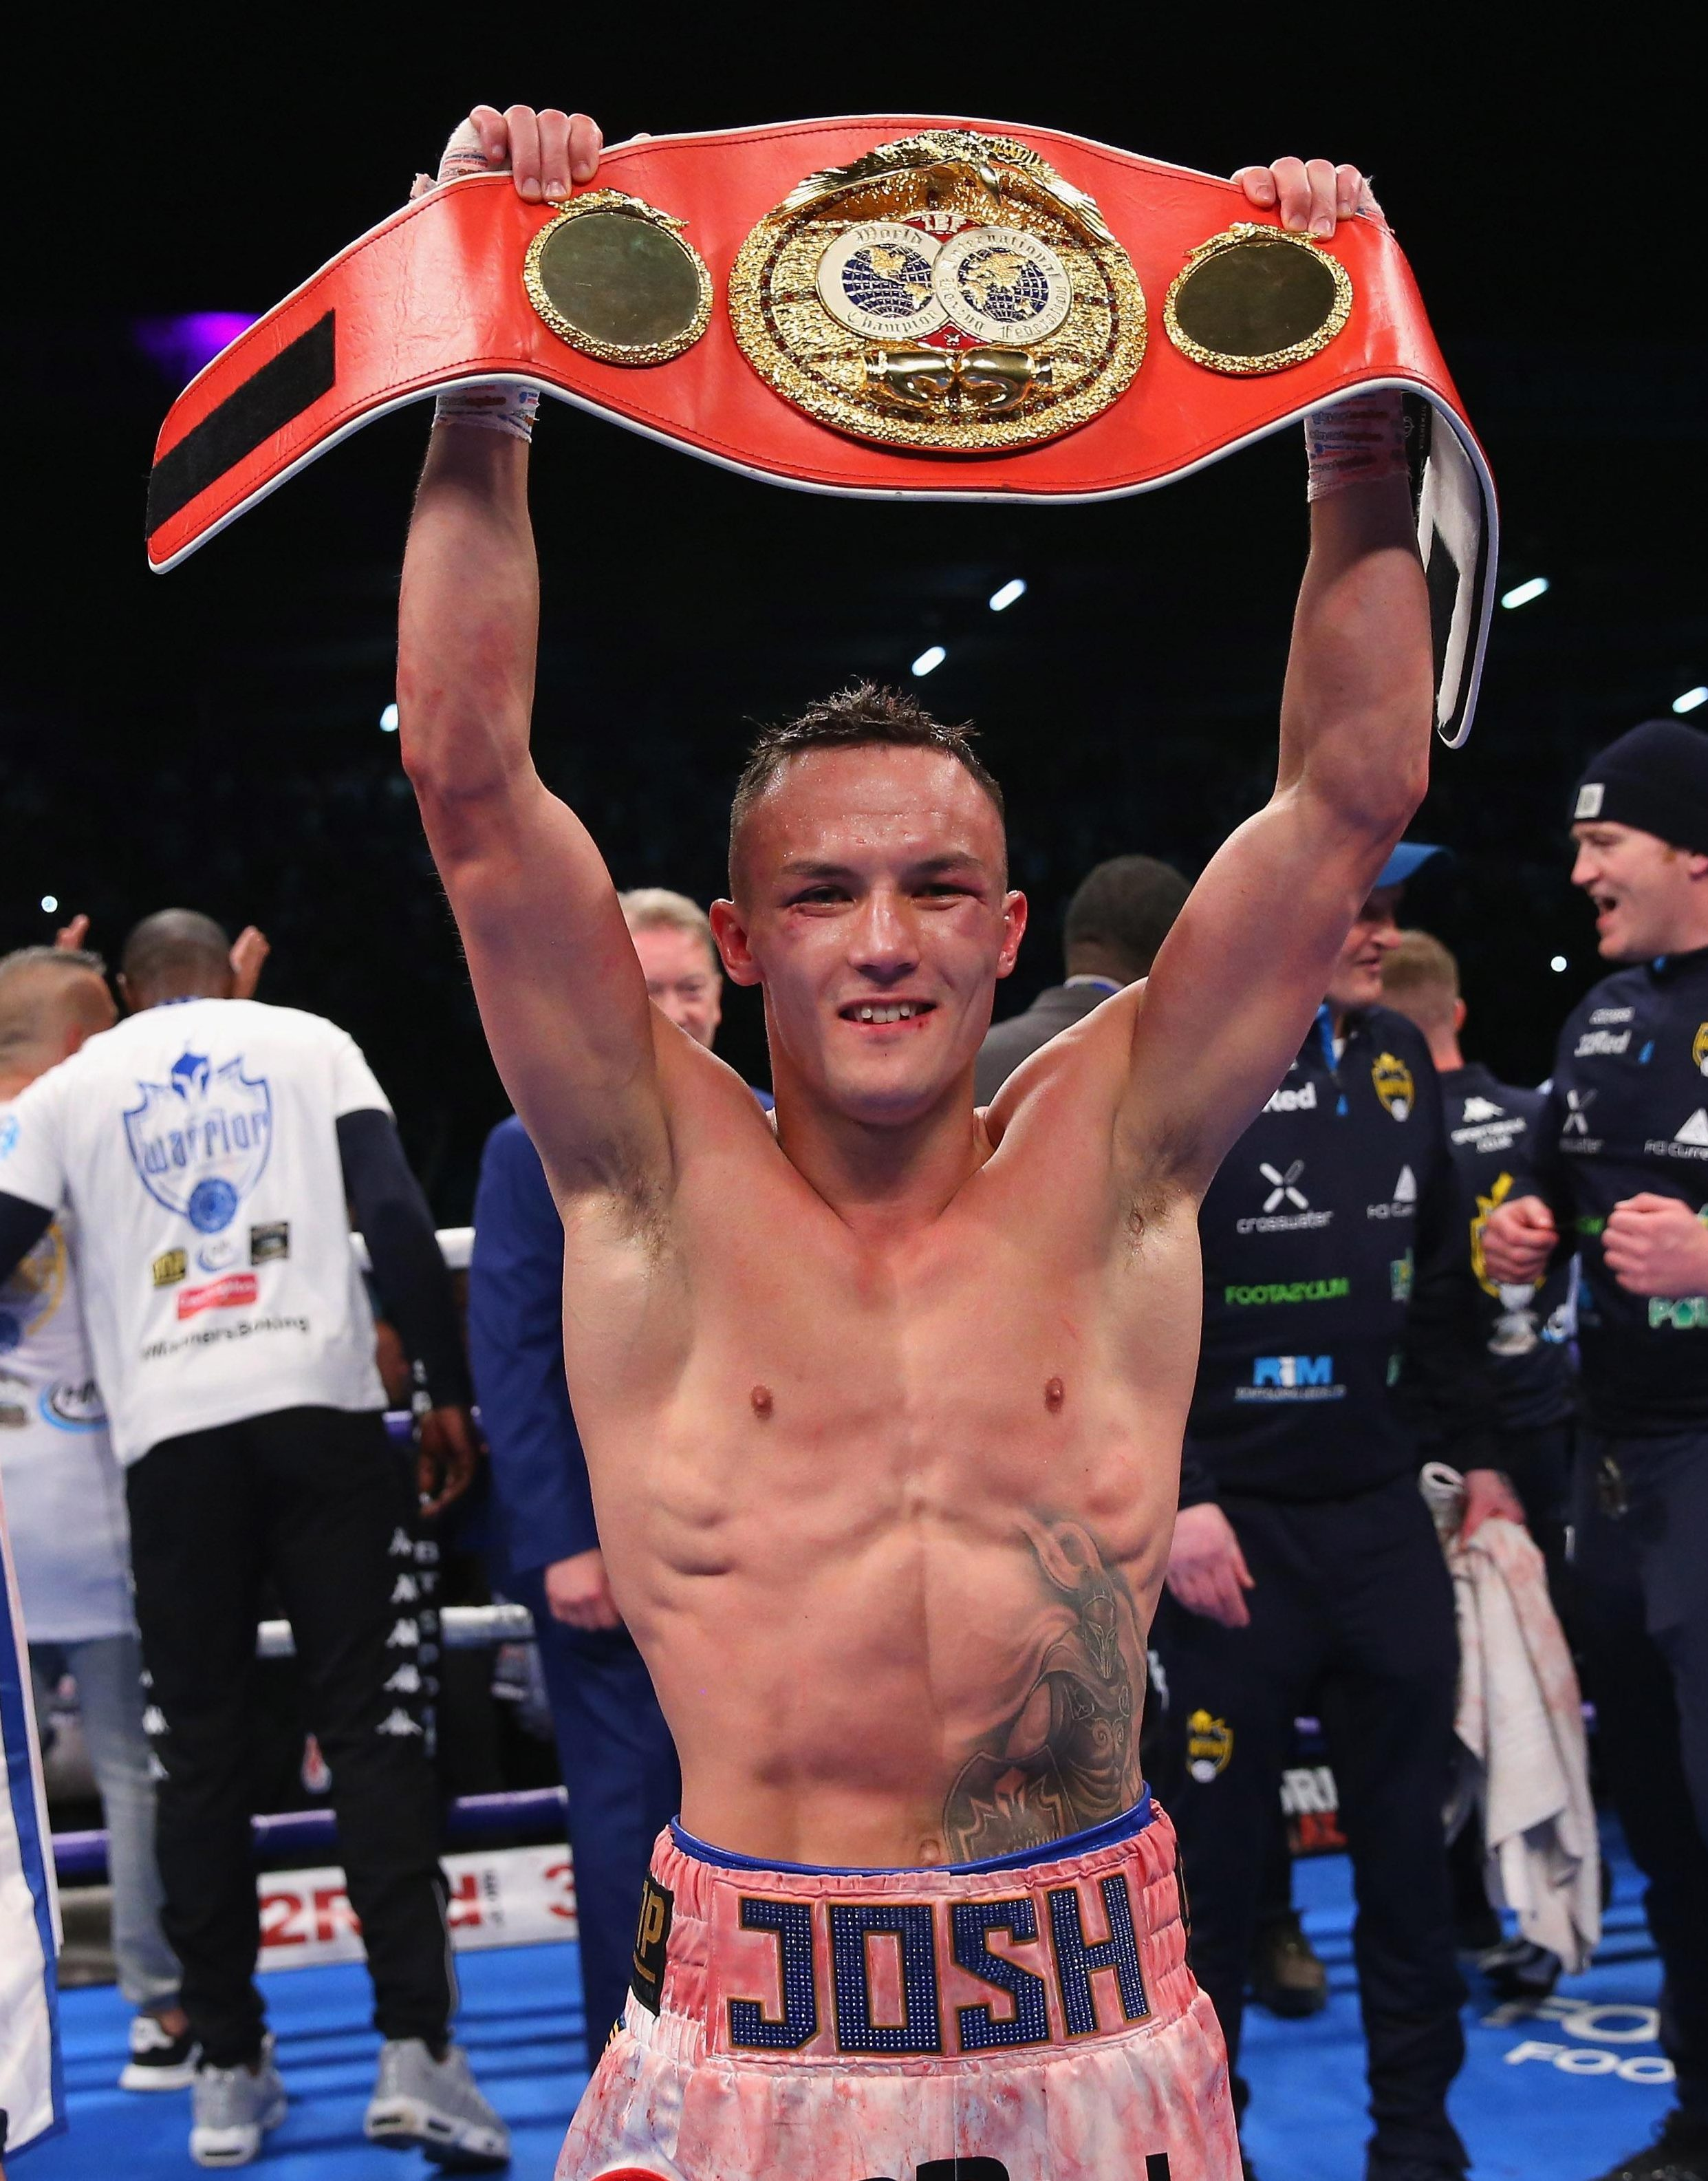 Josh Warrington is the man who holds the IBF featherweight world title - a belt Carl Frampton has his eyes on